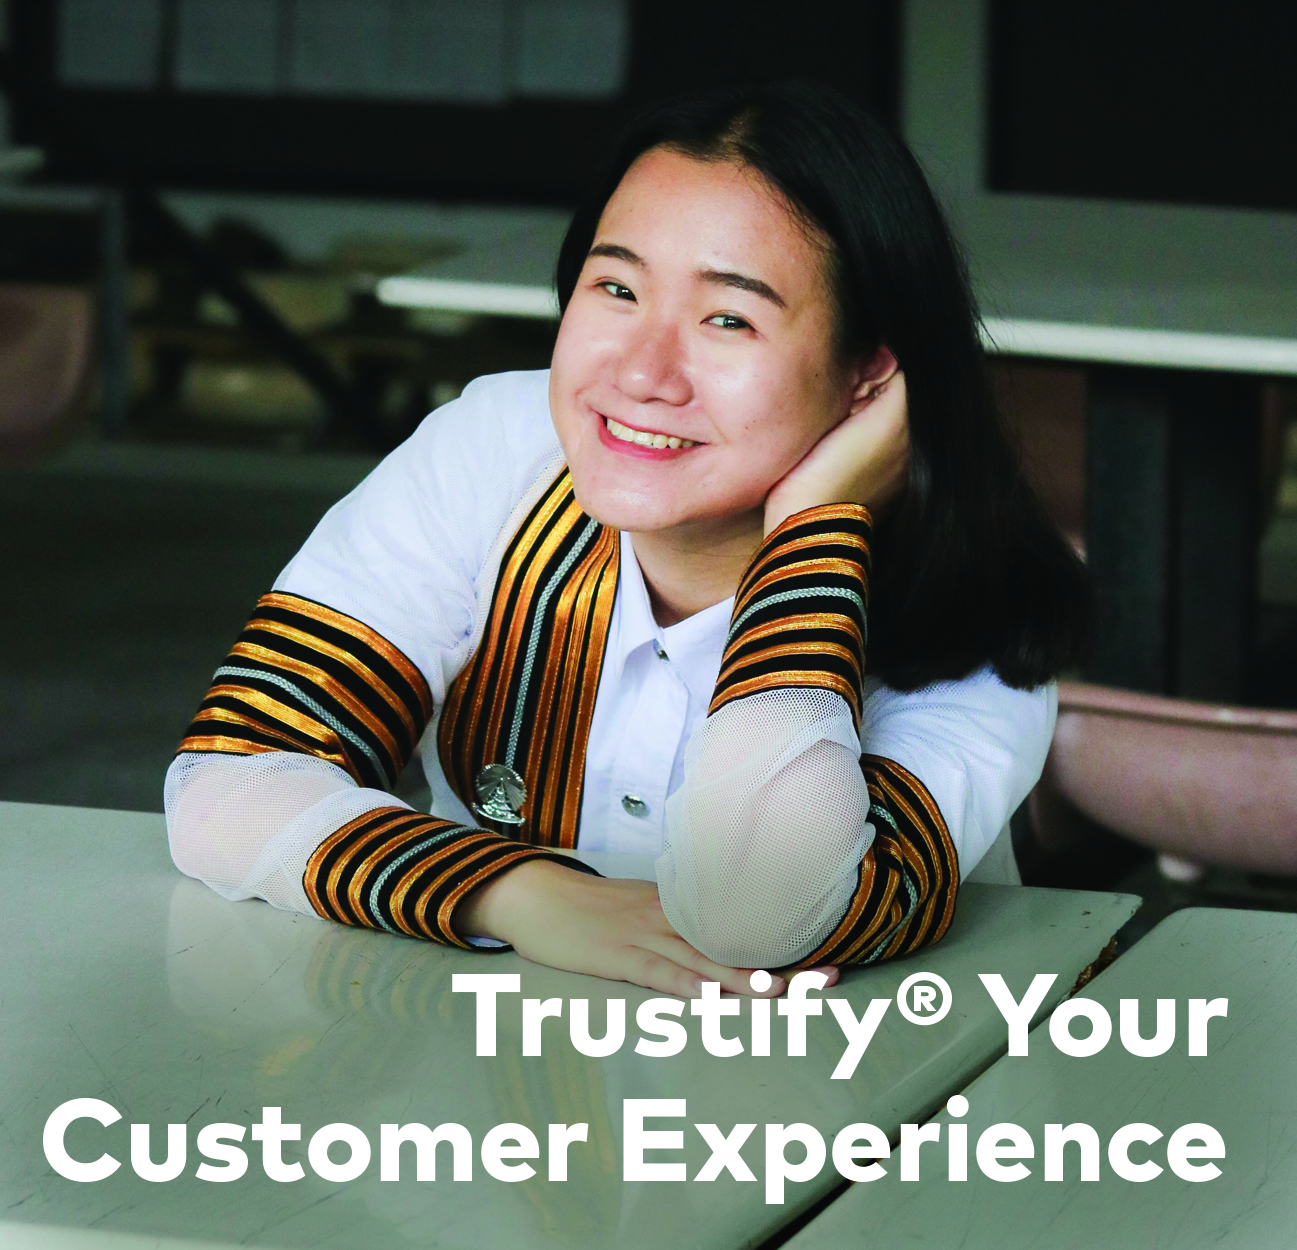 4_Mext_Consulting_Firm_Melbourne_Trust_Trustify_Your_Customer_Experience.jpg